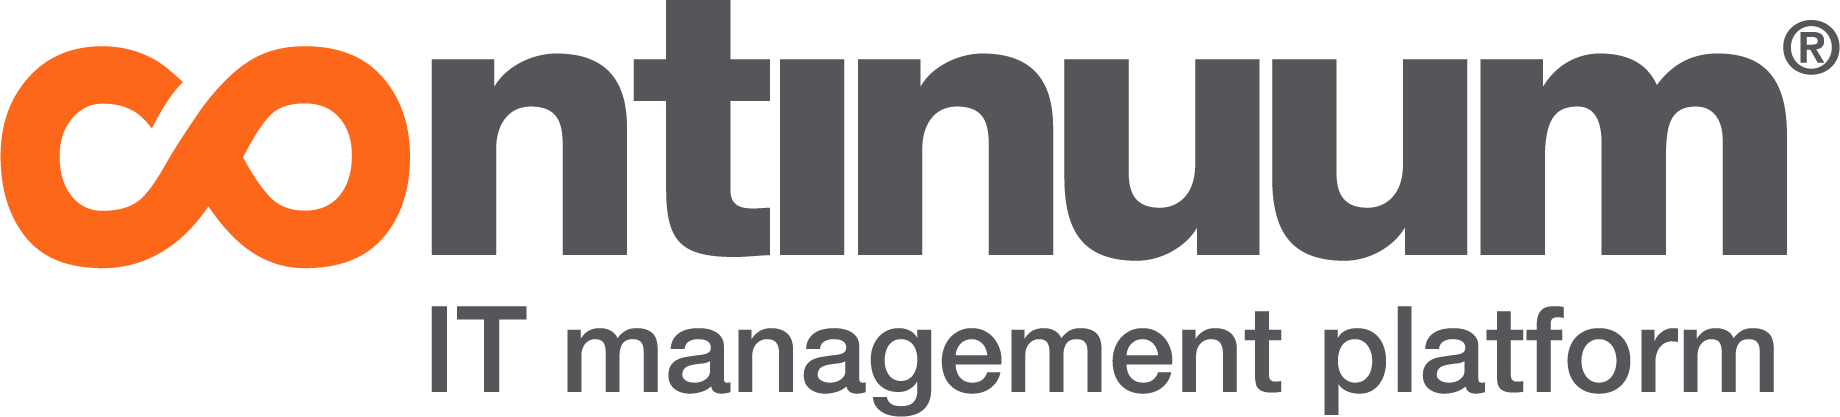 Continuum IT Management Platform Logo